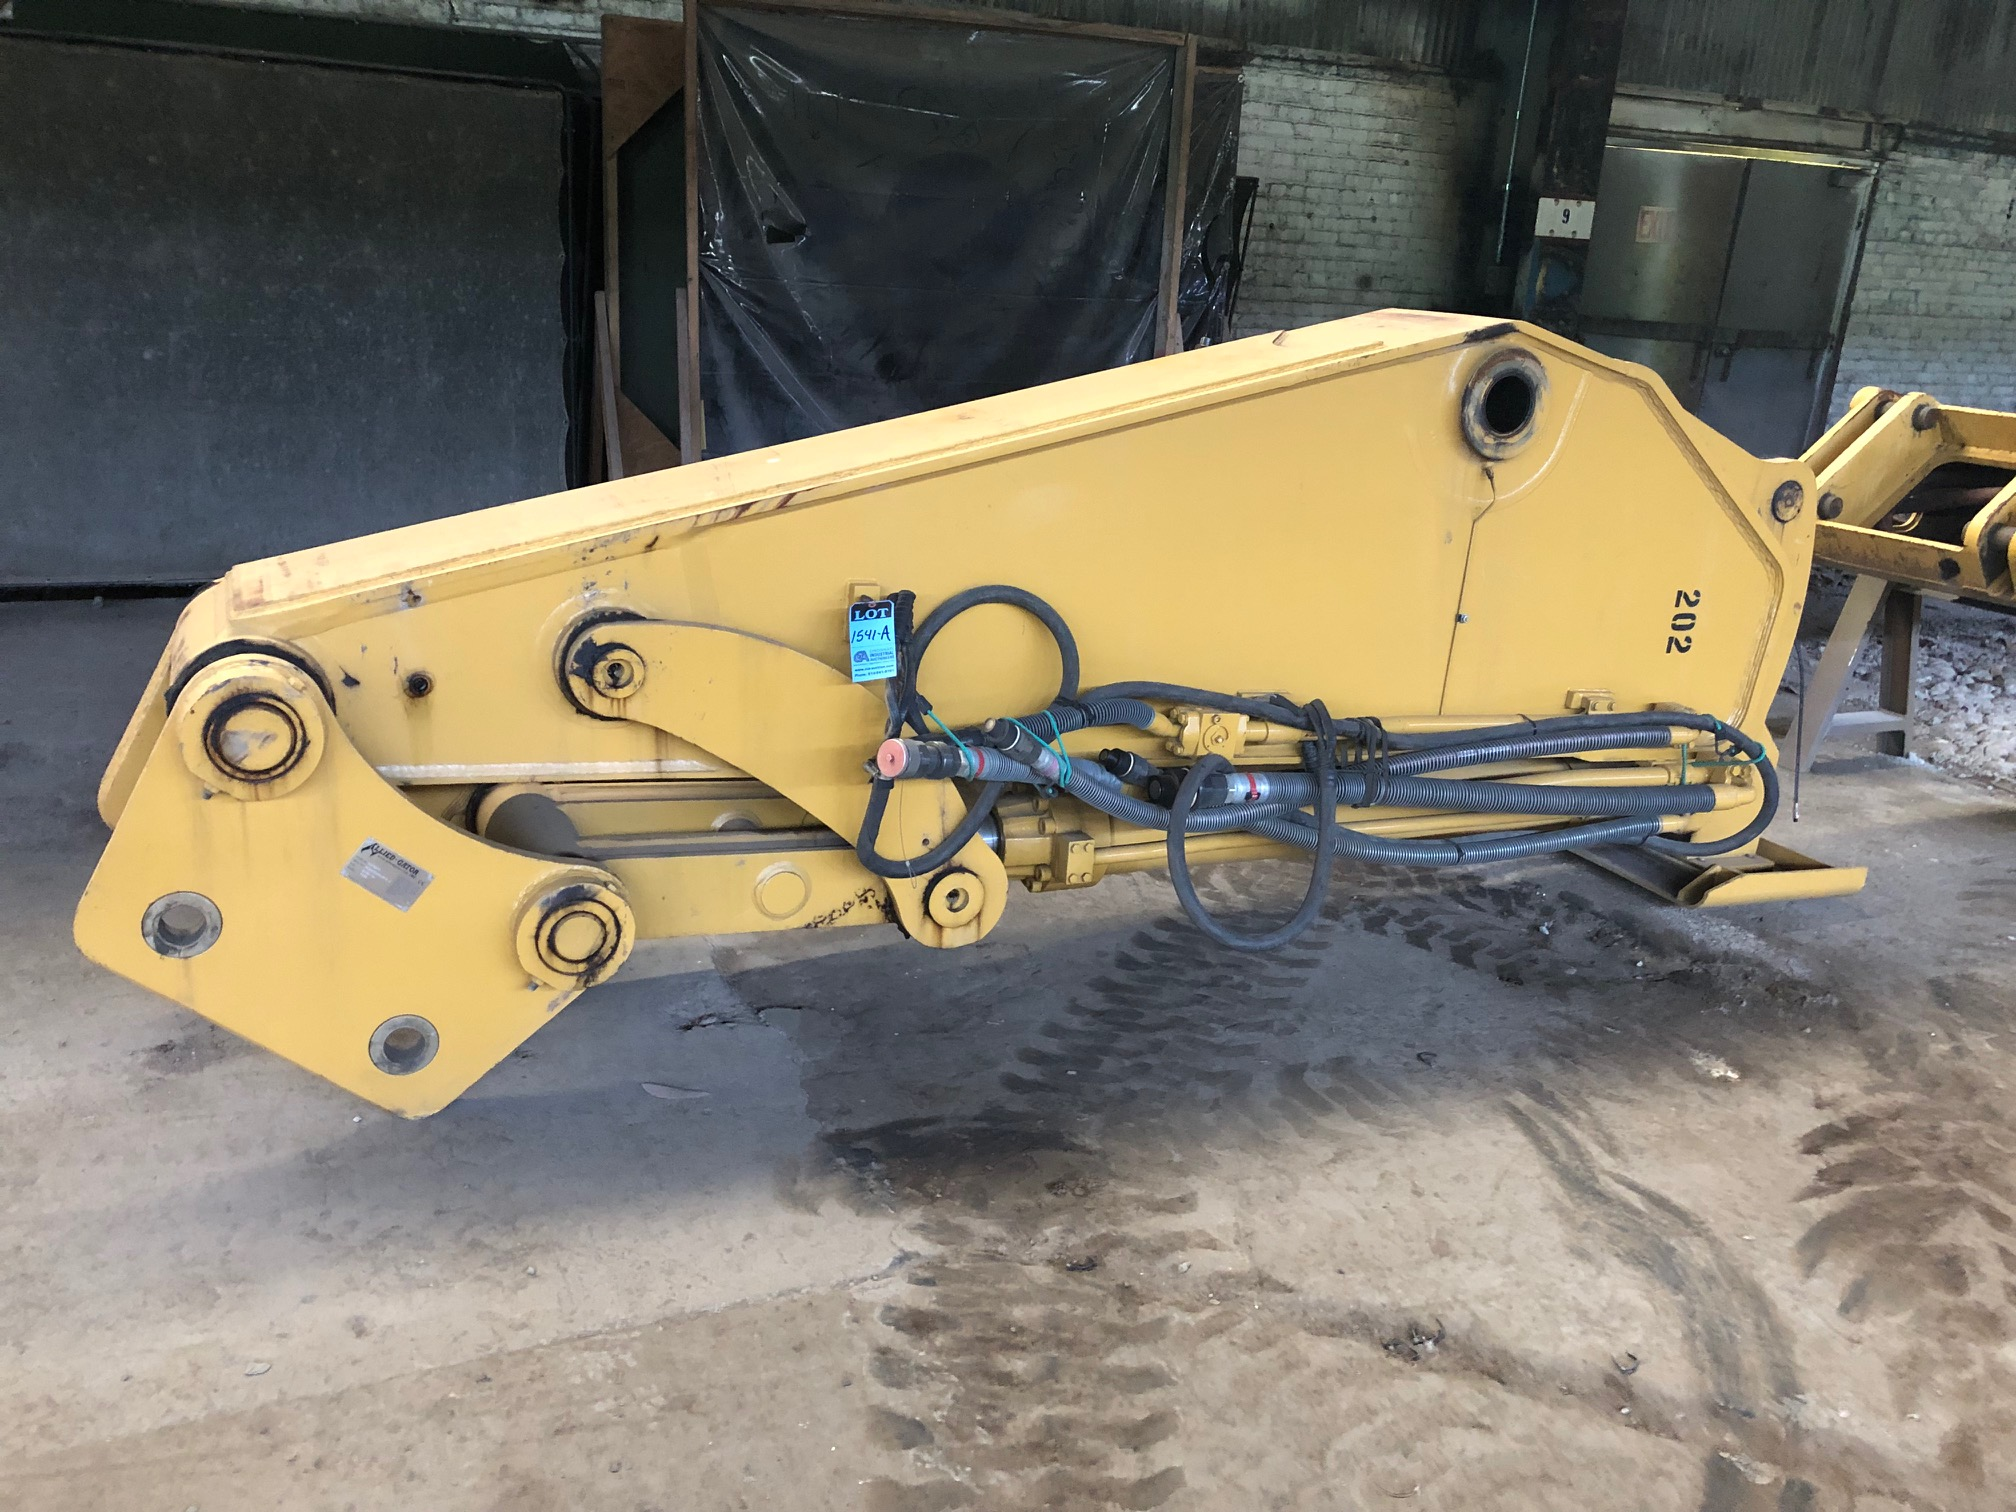 Day 2 - Allied Consolidated Industries, Inc. - Huge Two-Day Auction of Extremely Well-Maintained Erecting and Demolition Equipment